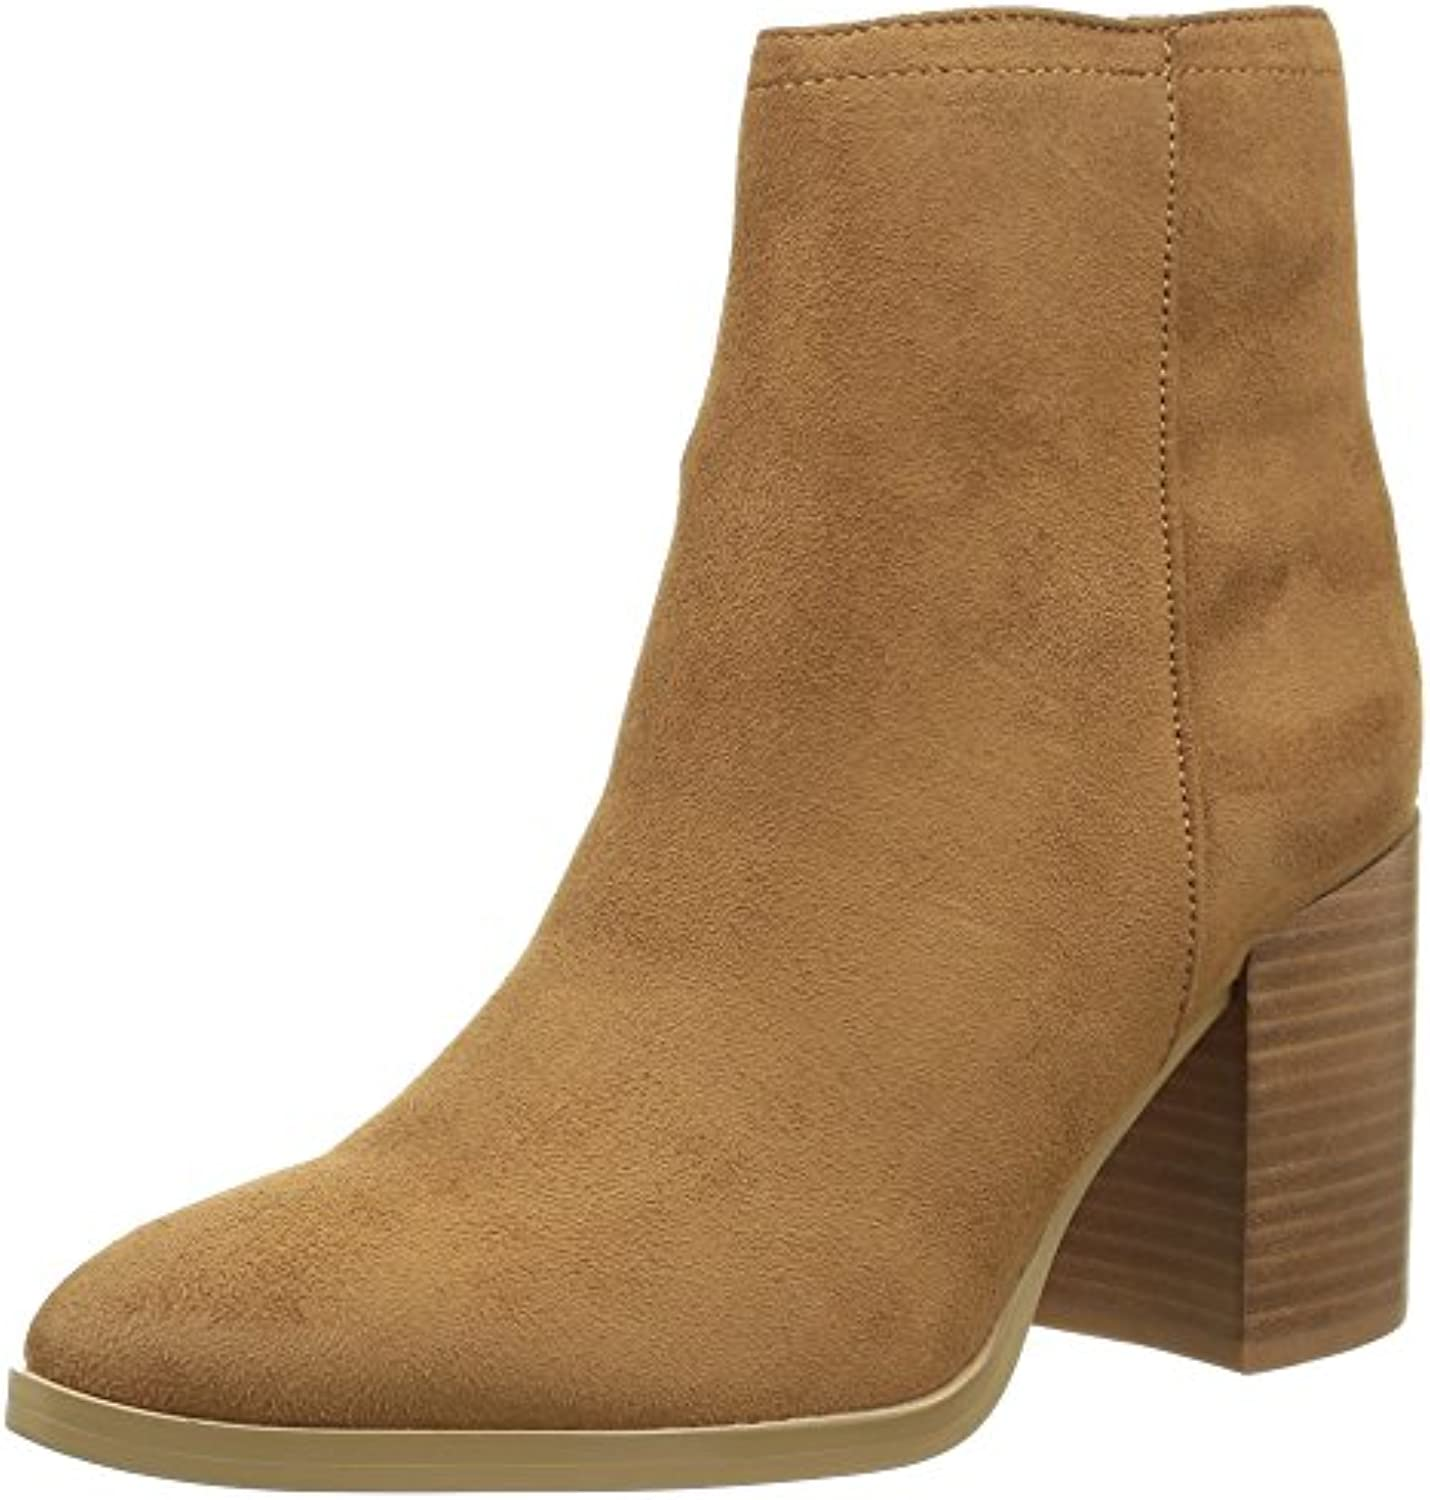 Buffalo Shoes B006a-58 S0008f IMI Suede, Botines para Mujer